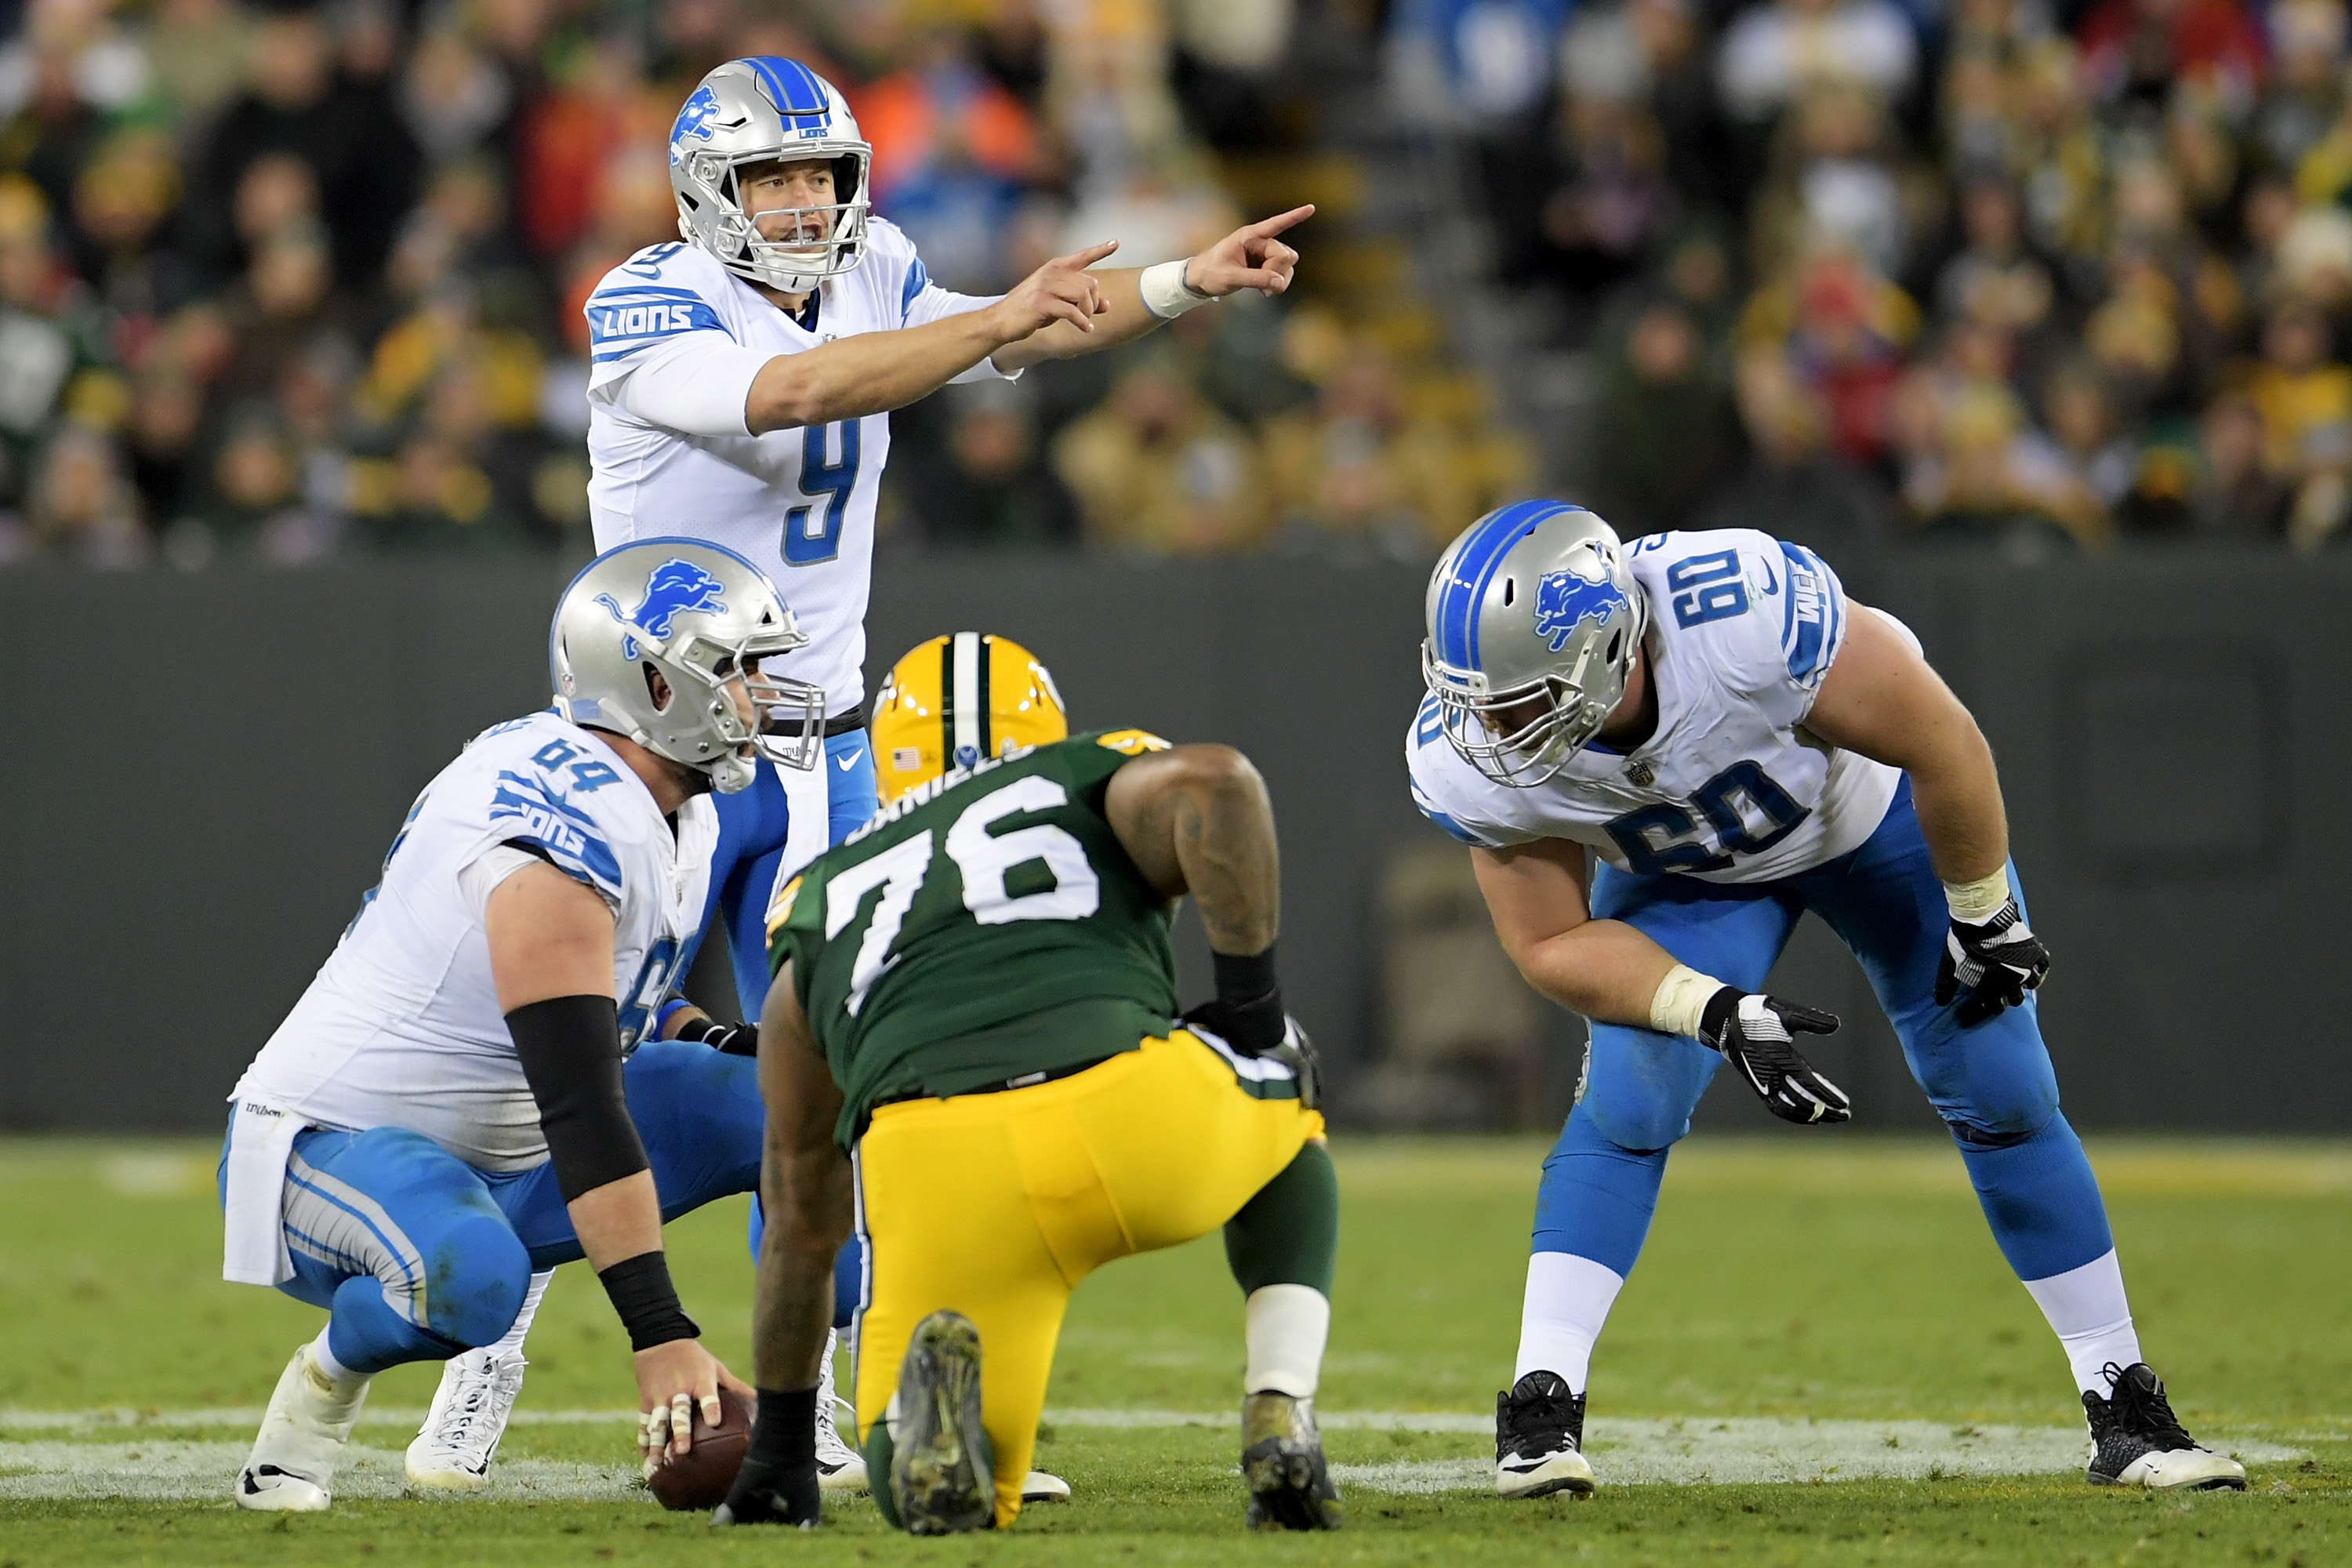 Lions activate Taylor Decker from PUP list ahead of Browns game